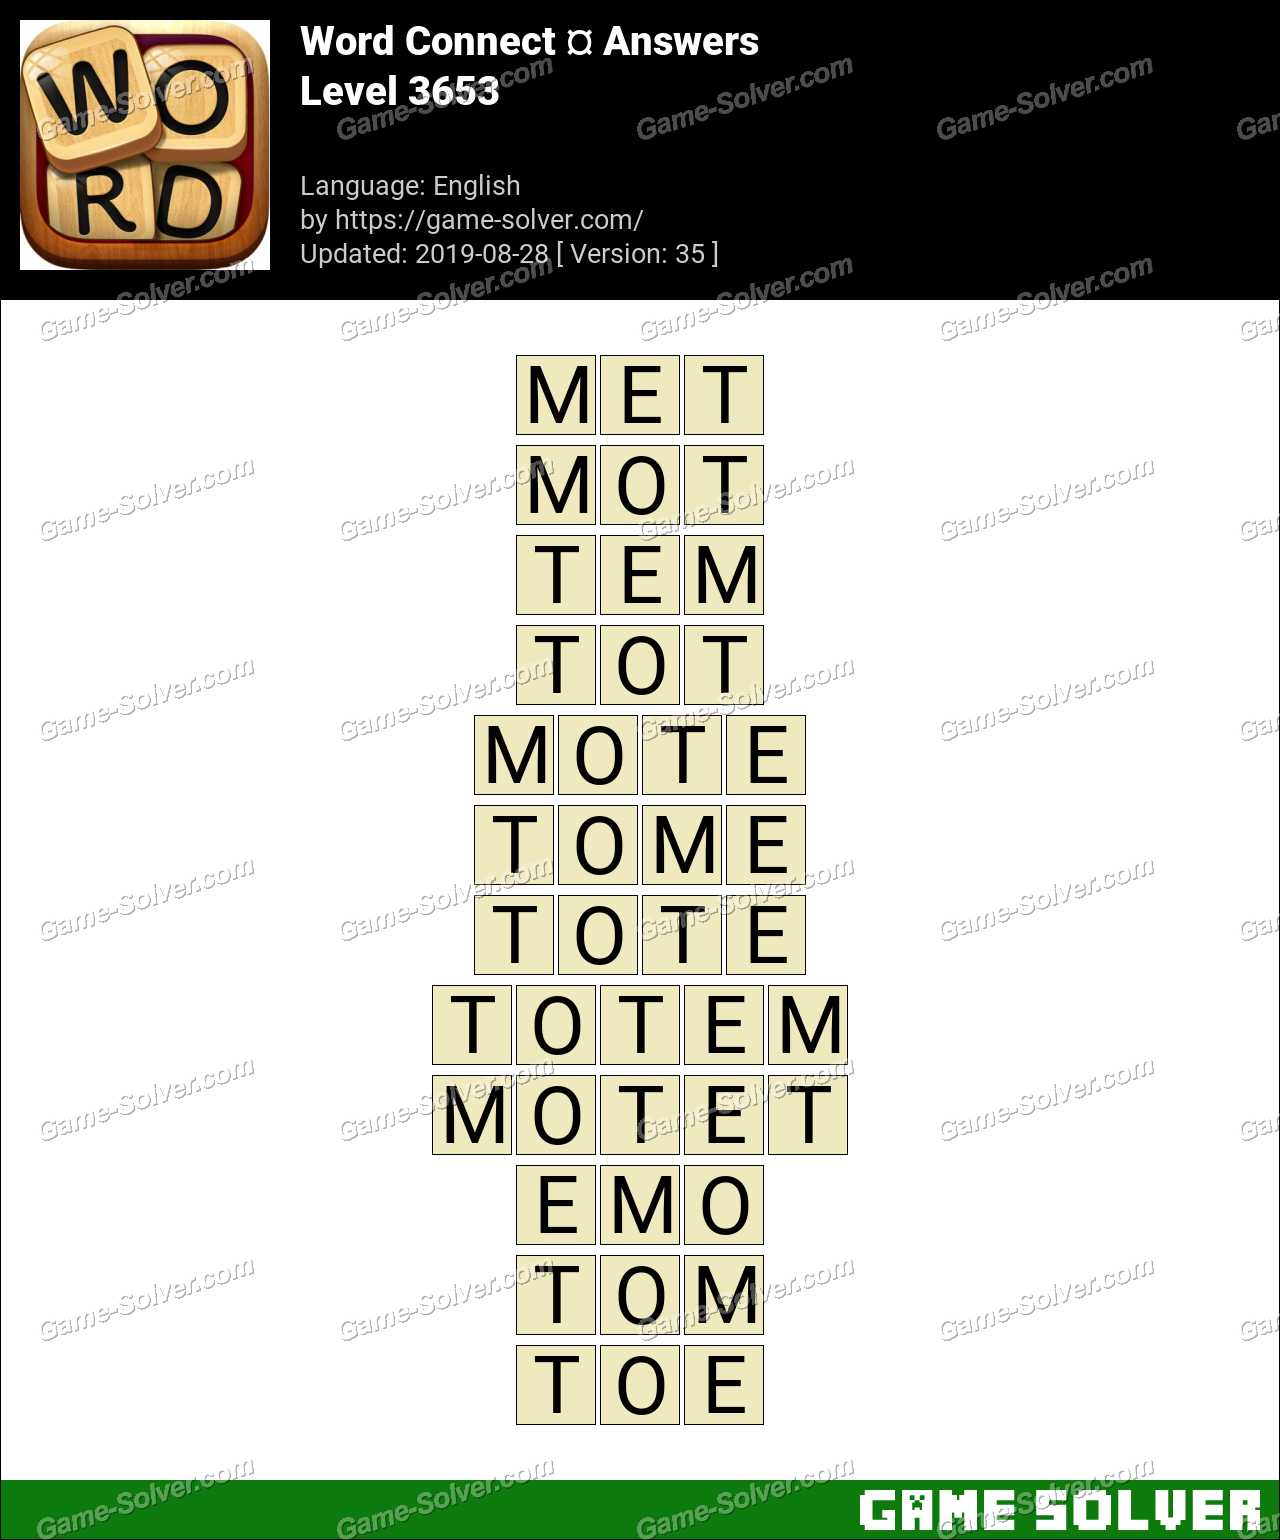 Word Connect Level 3653 Answers